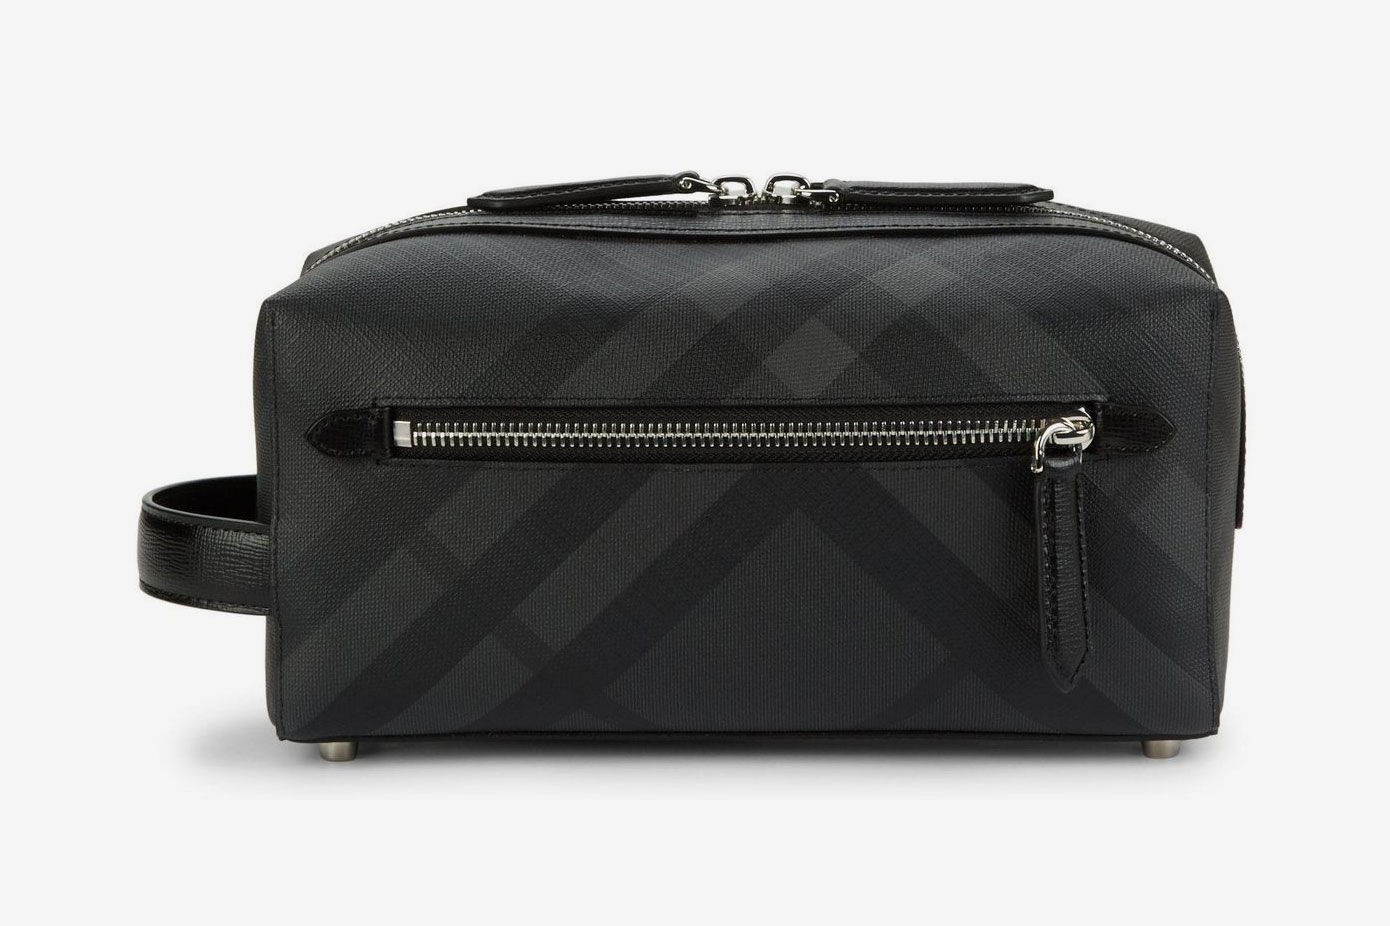 Burberry Check Dopp Kit At Saks Fifth Avenue Vetelli Leather Toiletry Bag